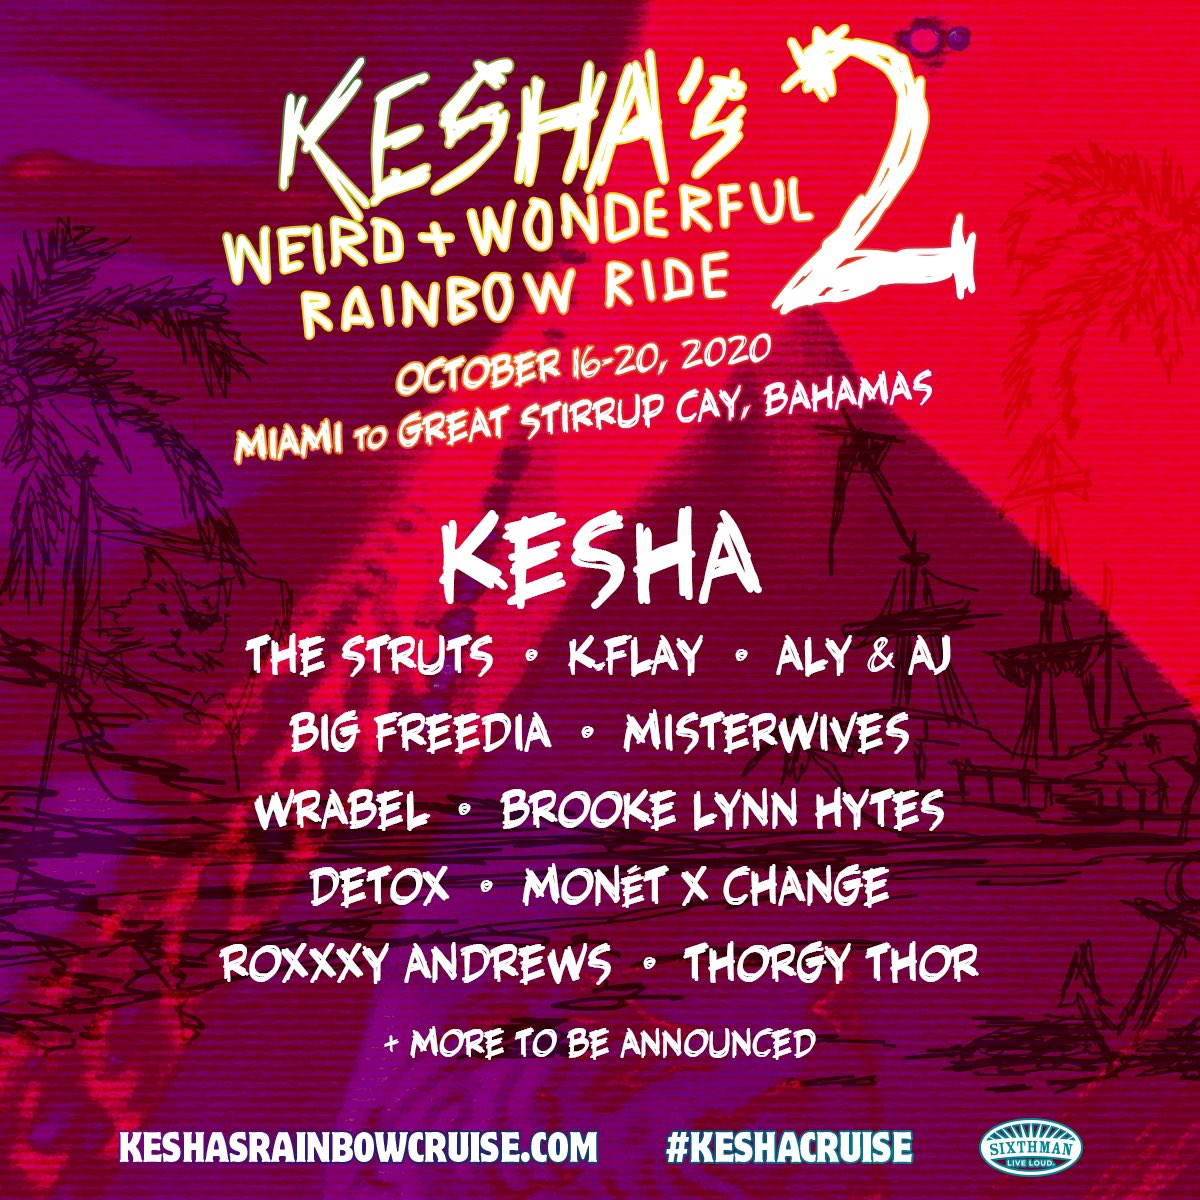 Sooooo excited for this!!! Get your tickets at KeshasRainbowCruise.com @KeshaRose @TheOnlyDetox @monetxchange @RoxxxyAndrews @ThorgyThor @bigfreedia @alyandaj @kflay @MisterWives @TheStruts